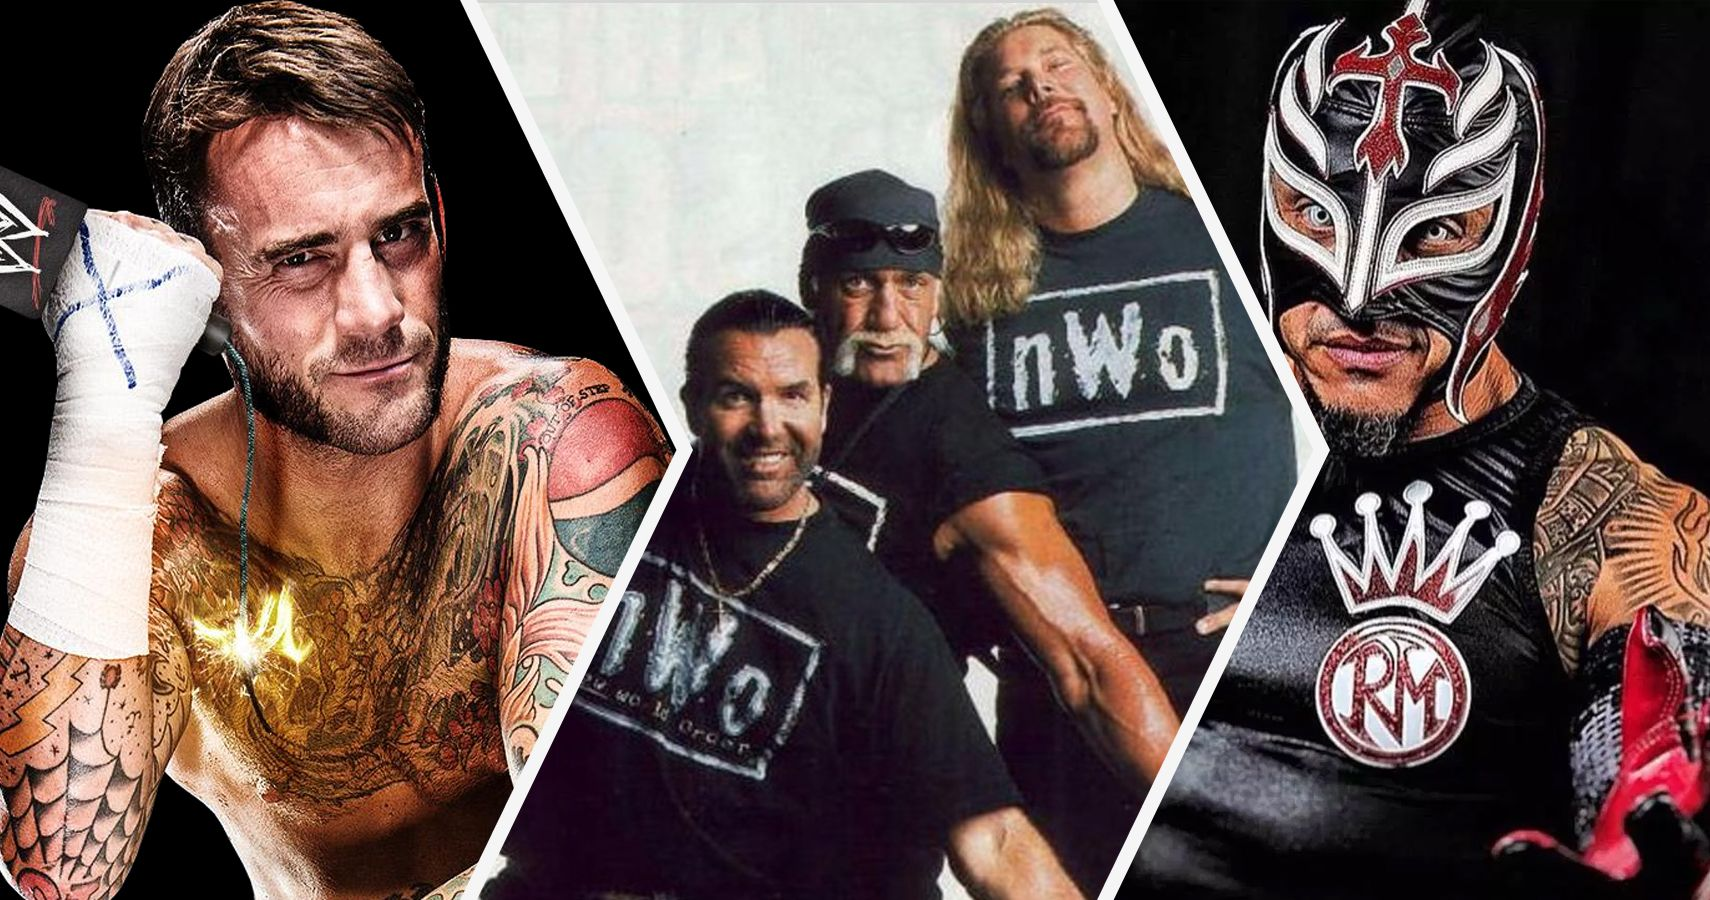 10 Backstage WWE Rumors We Hope Are True (And 10 We Hope Aren't)